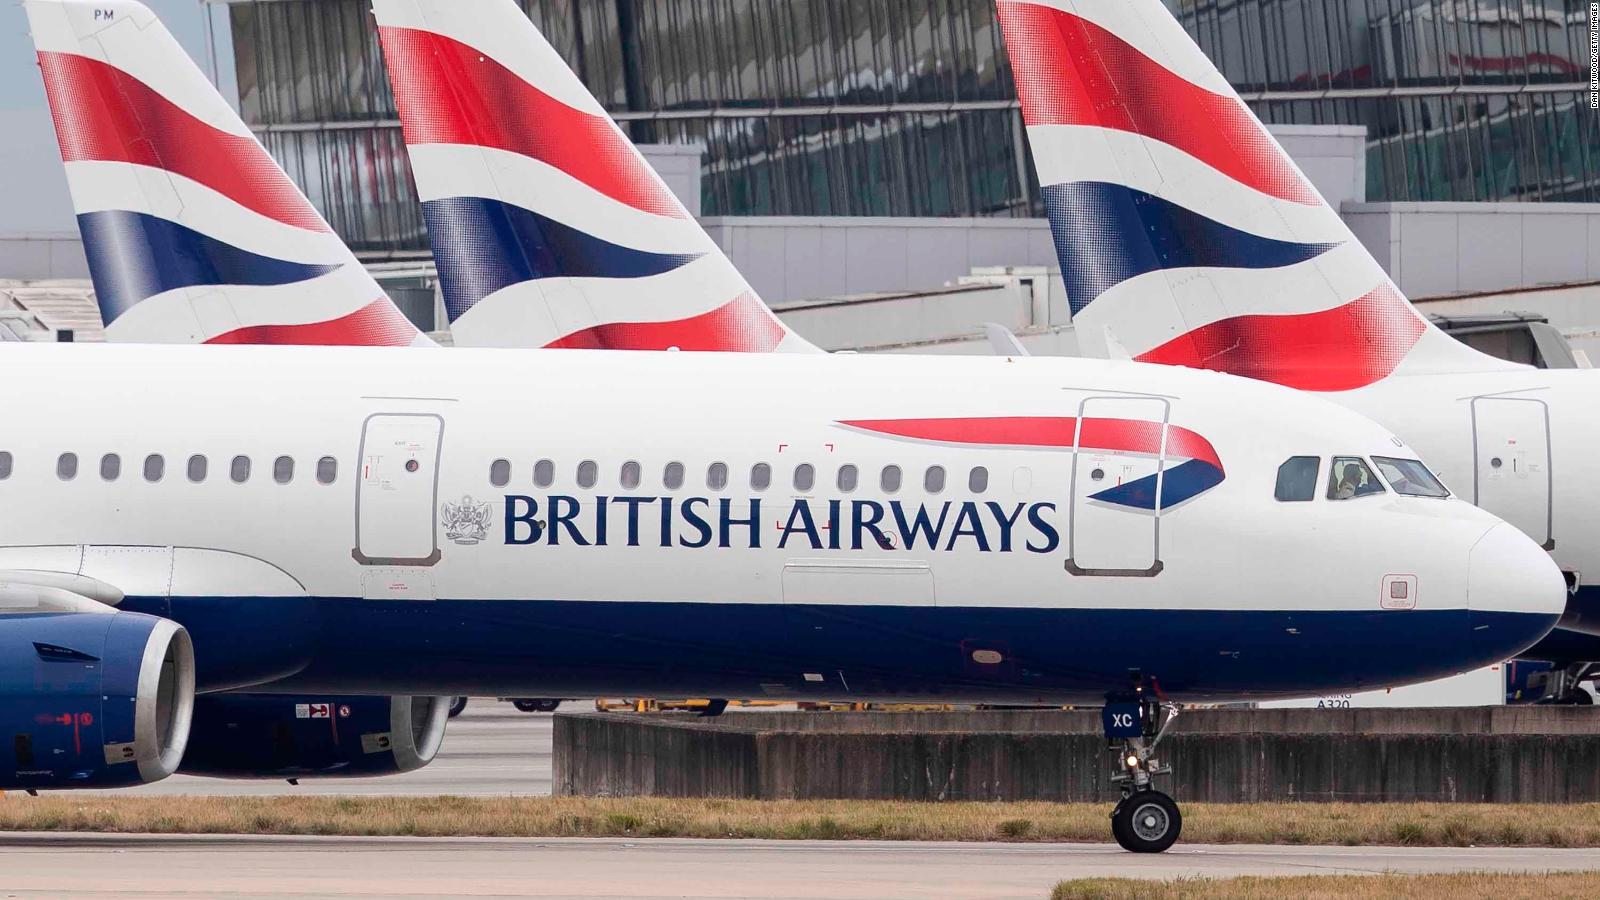 British Airways To Fire 10,000 Staff As Airline Struggles To Survive Travel Restrictions